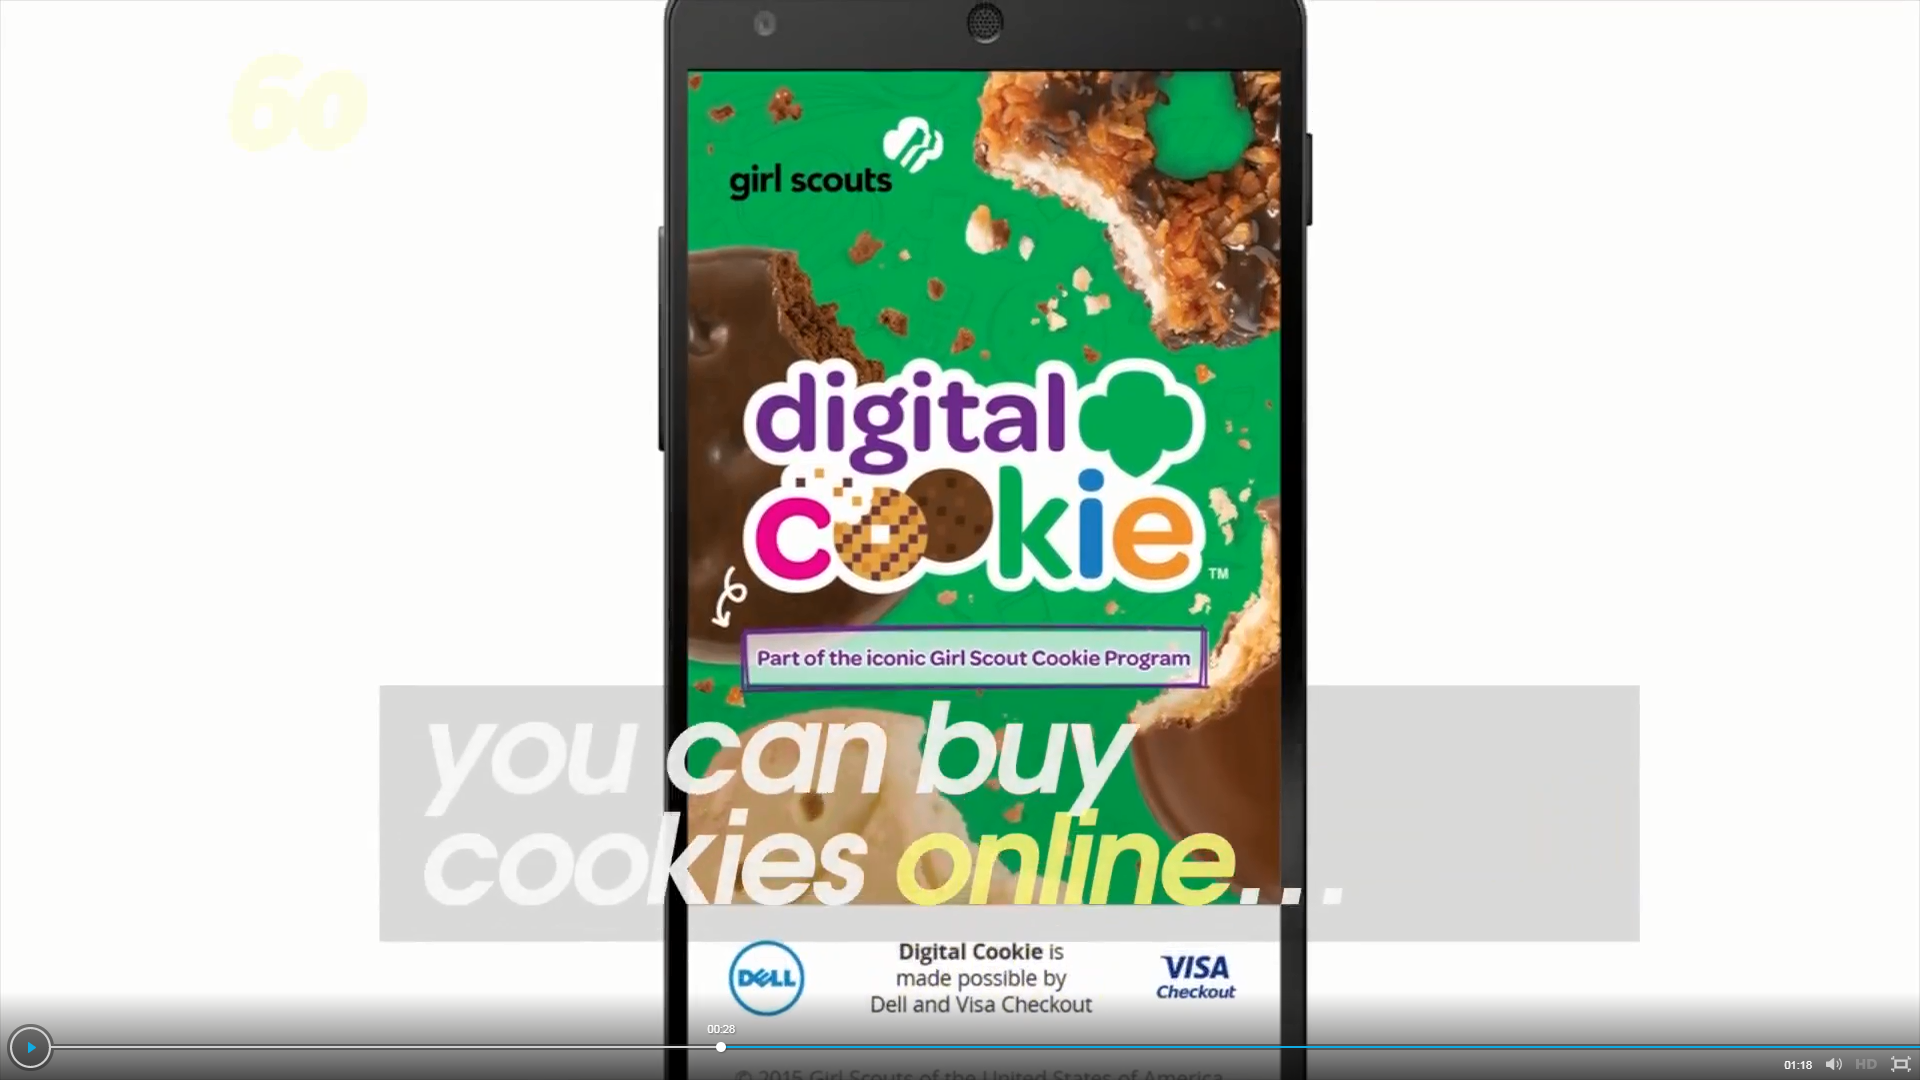 Girl Scouts to sell S'mores cookies door-to-door, digitally